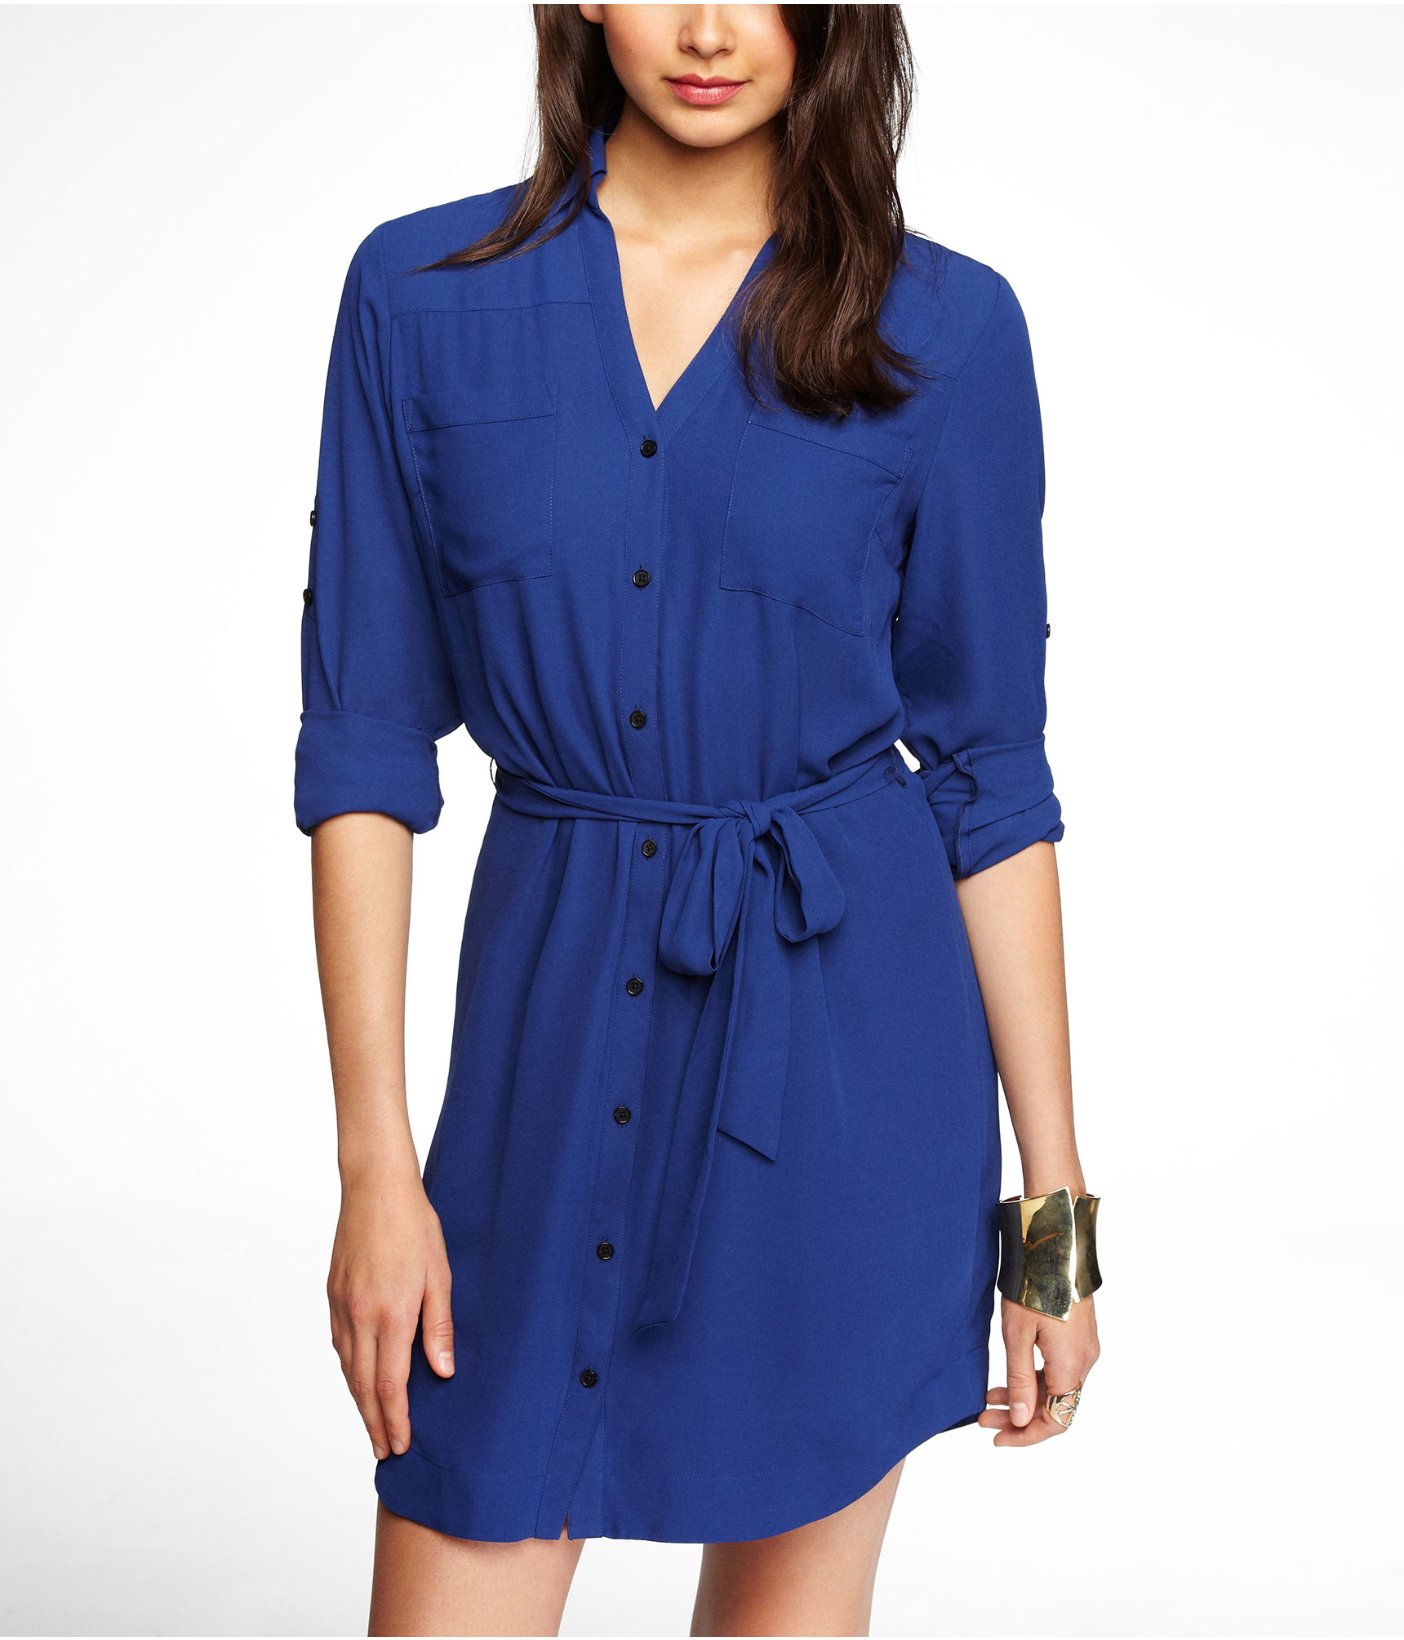 Royal blue shirt dress - All Pictures top